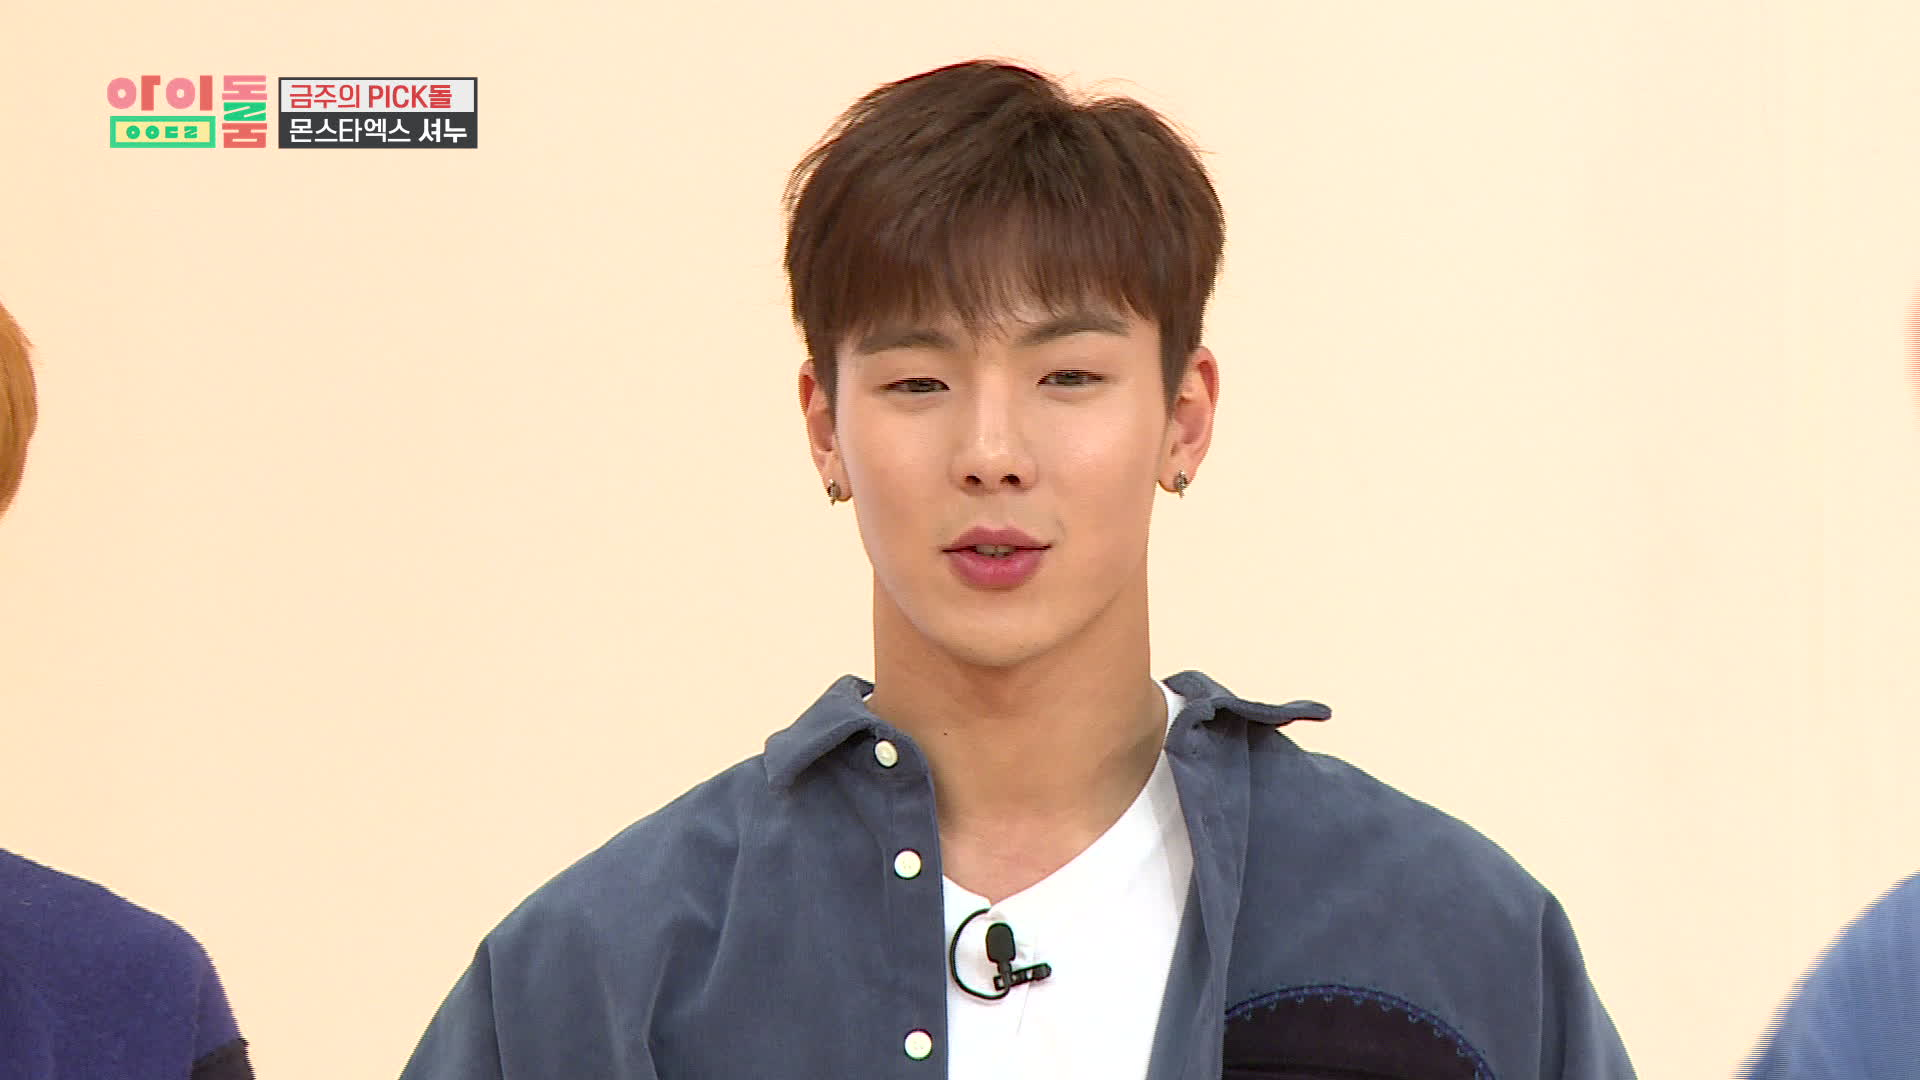 아이돌룸(IDOL ROOM) 24회 손현웃CAM - 픽돌 탄생의 순간! Shownu CAM - The moment of pick-dol's birth